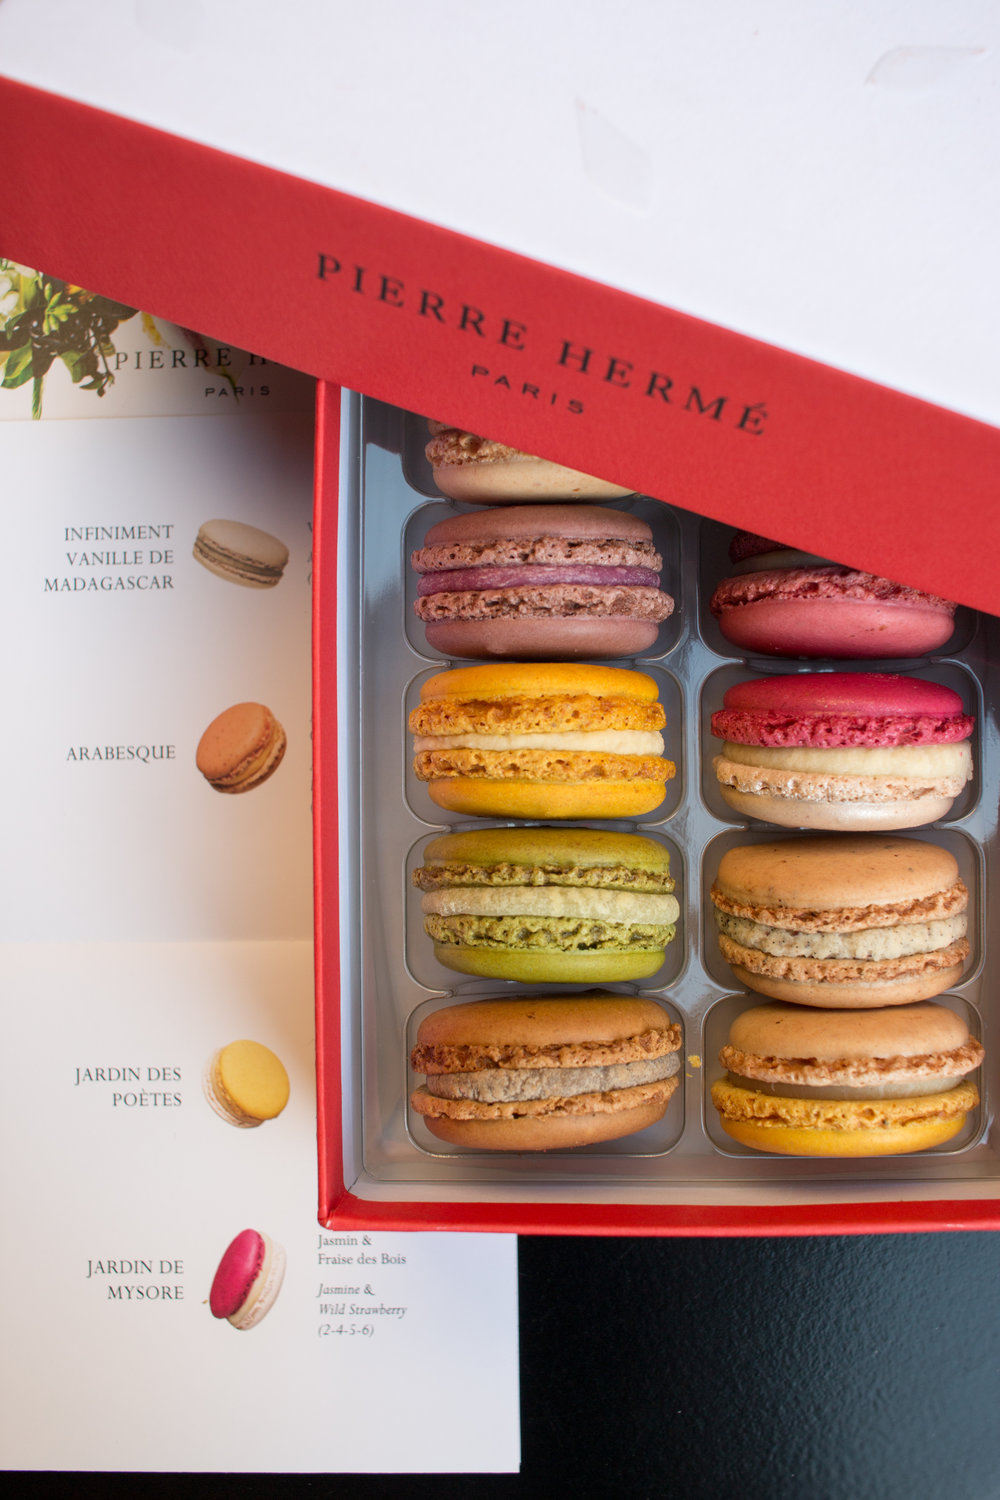 pierre herme macarons paris france